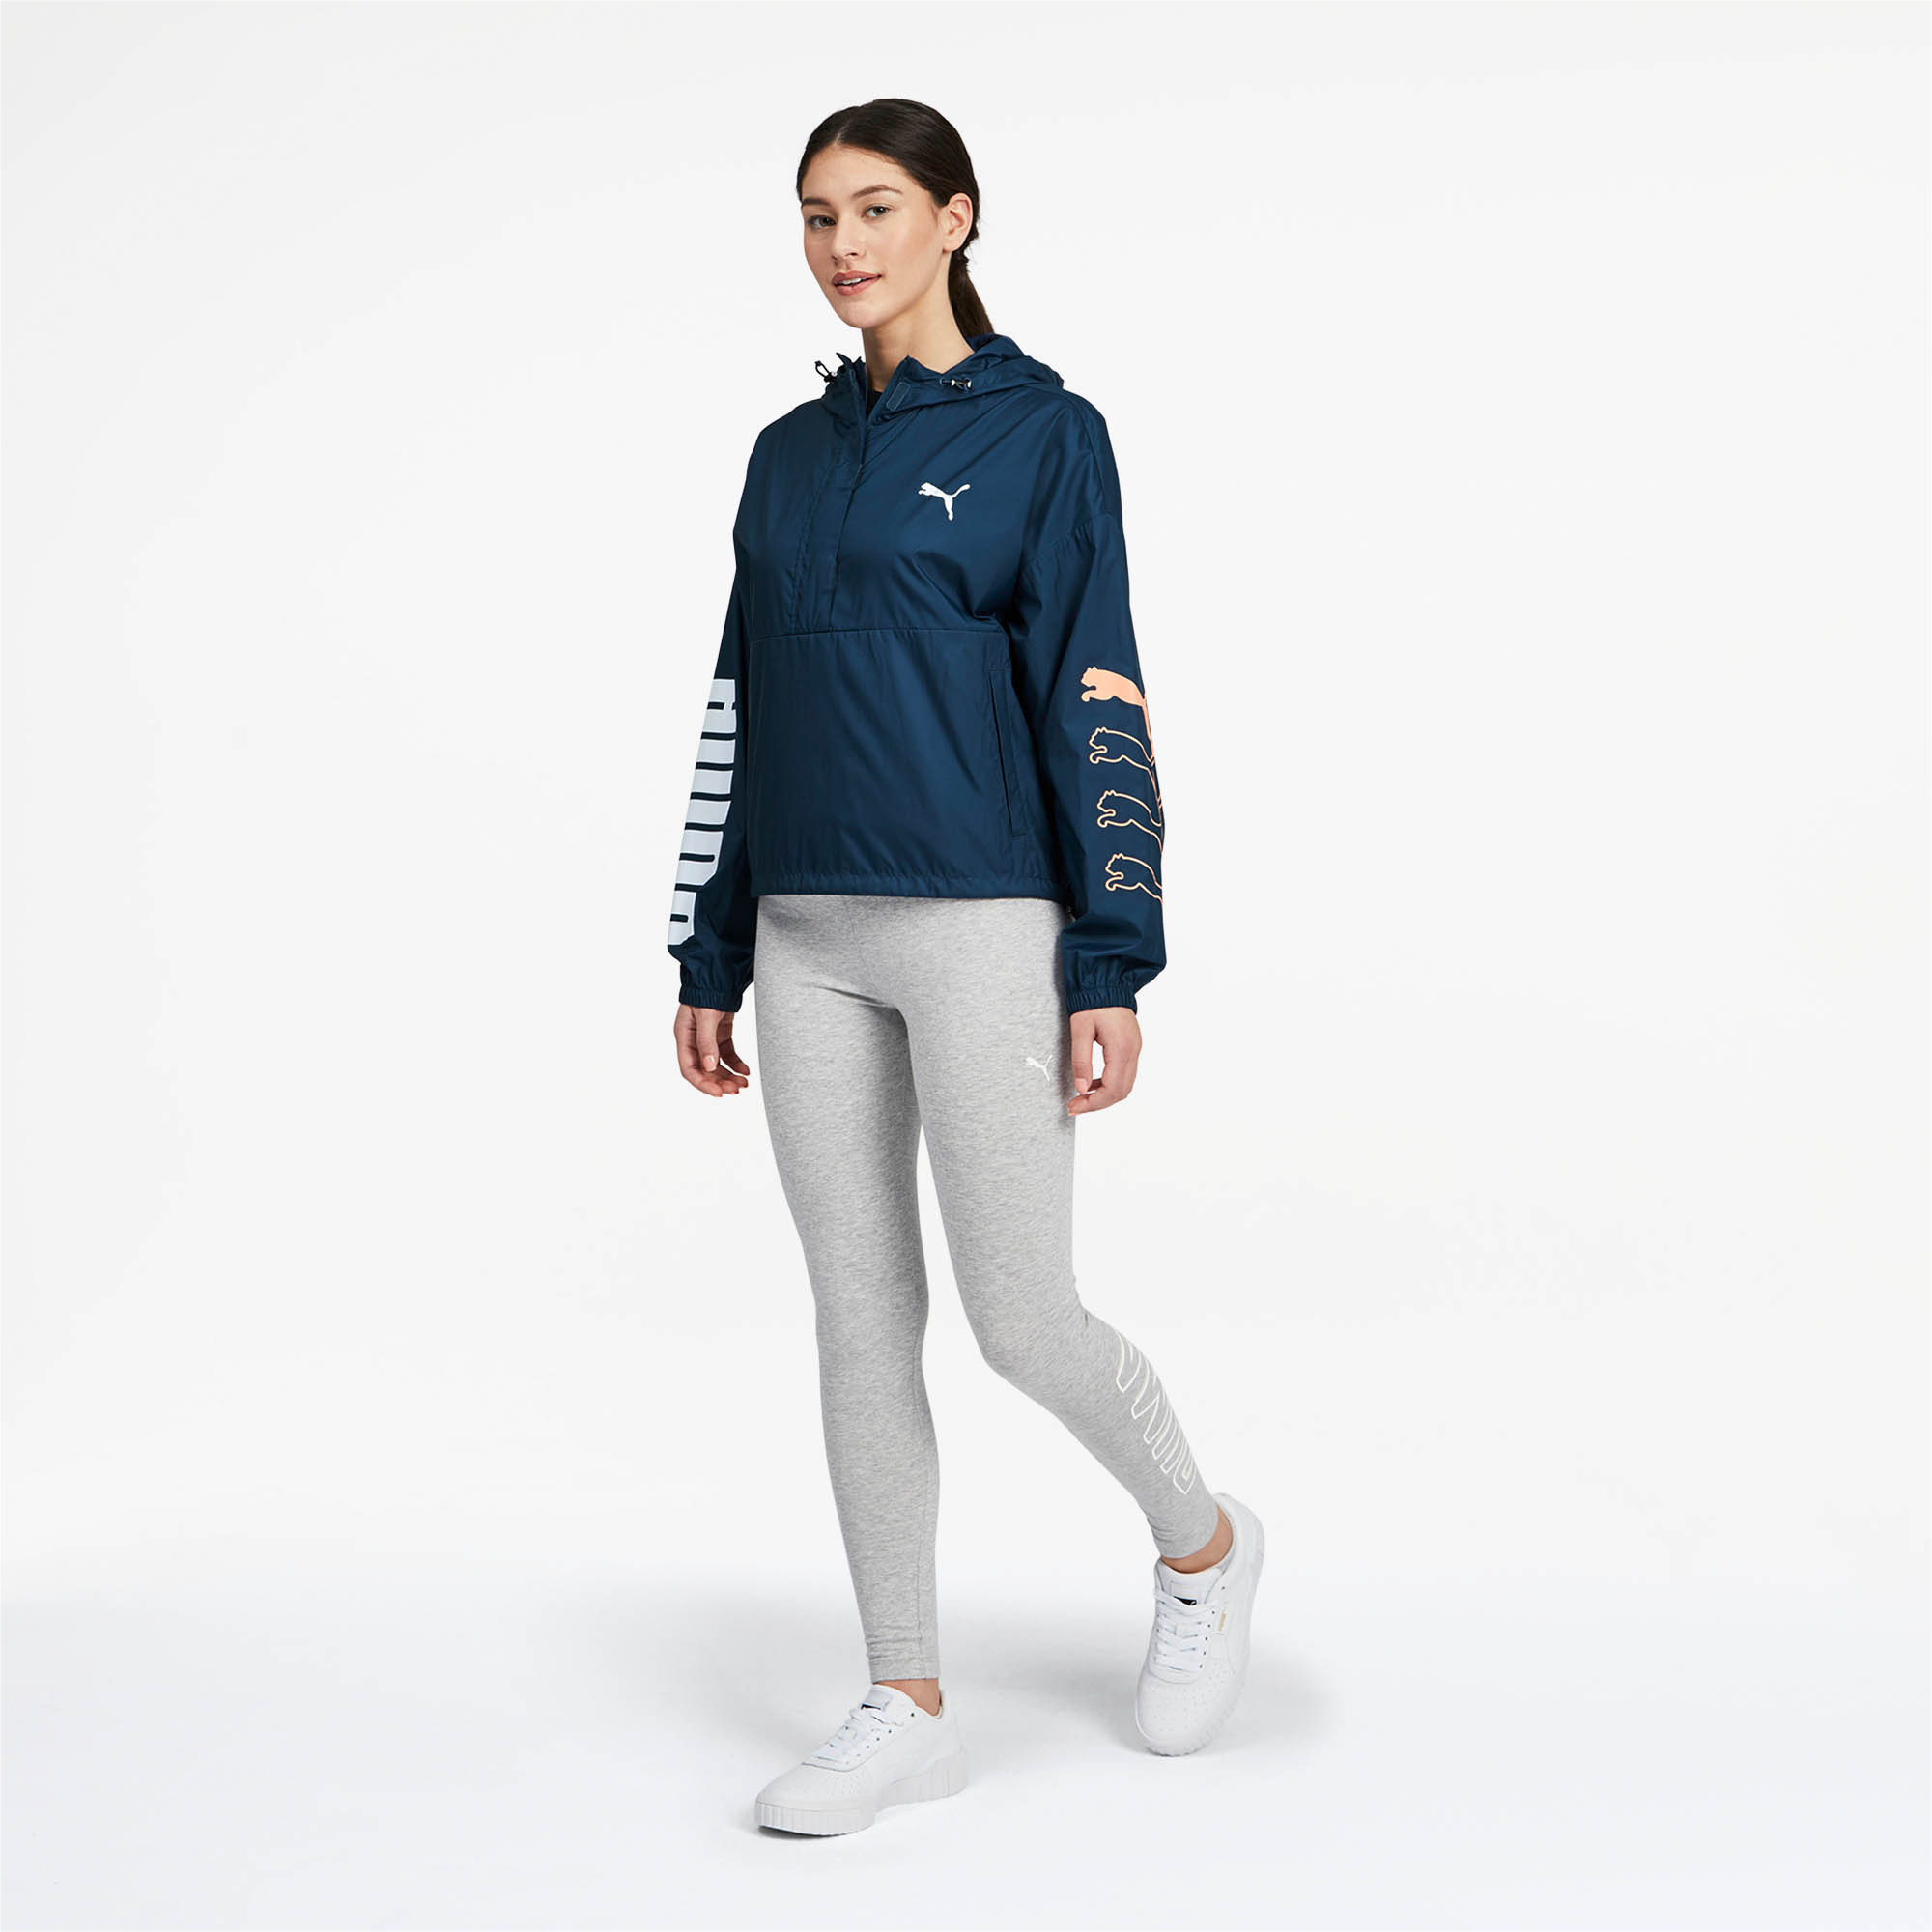 PUMA-Women-039-s-Half-Zip-Windbreaker thumbnail 11